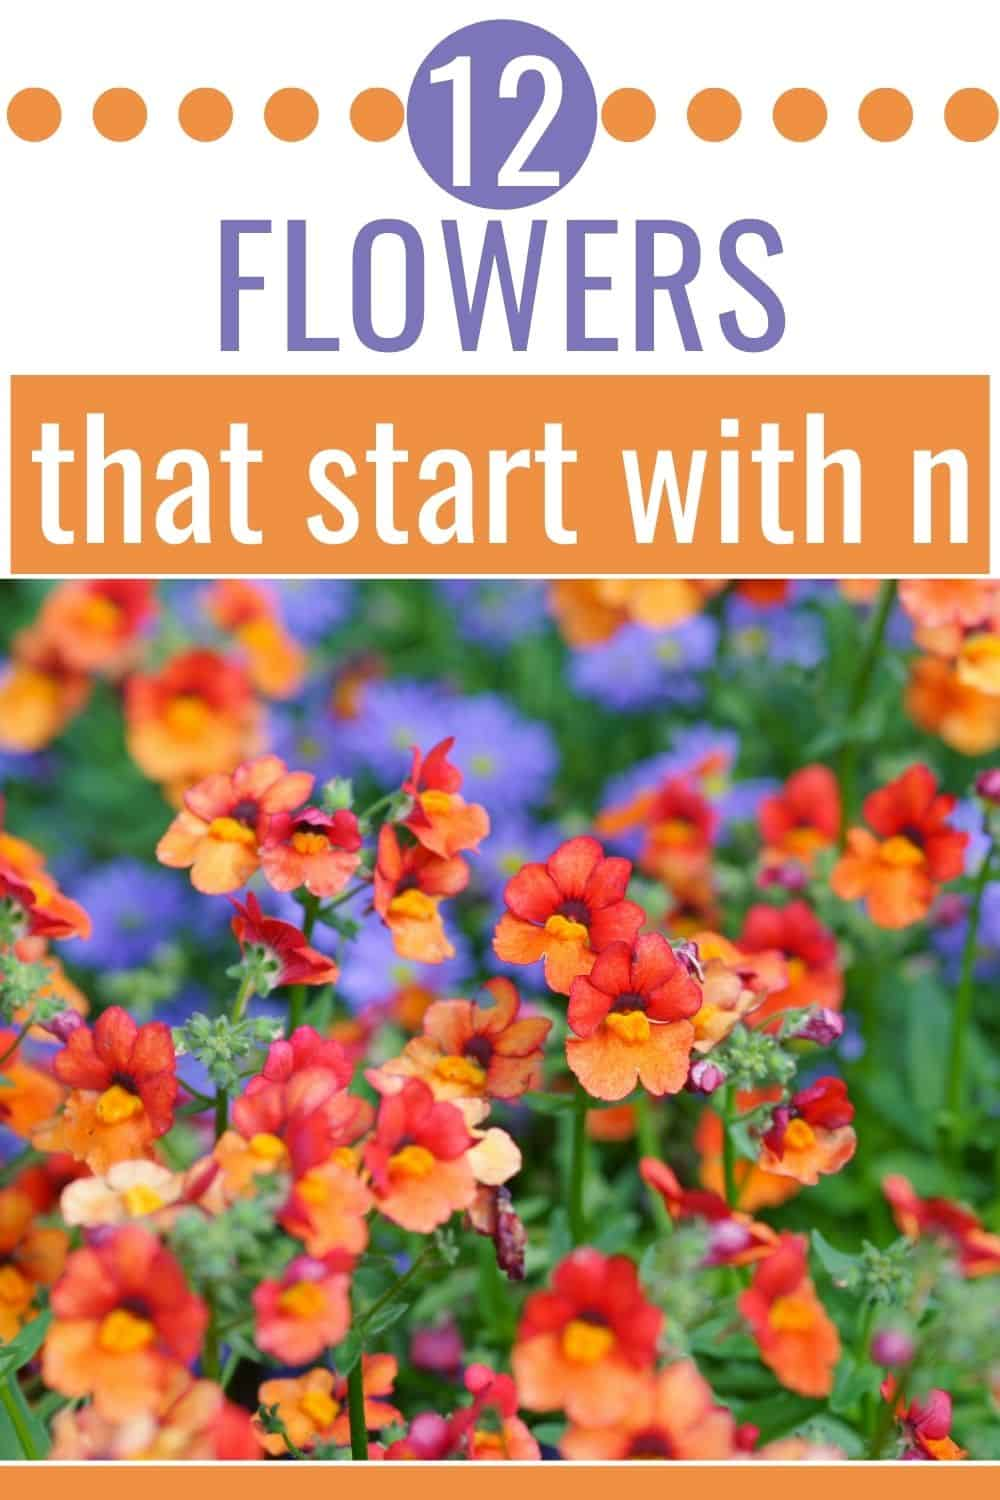 12 flowers that start with n